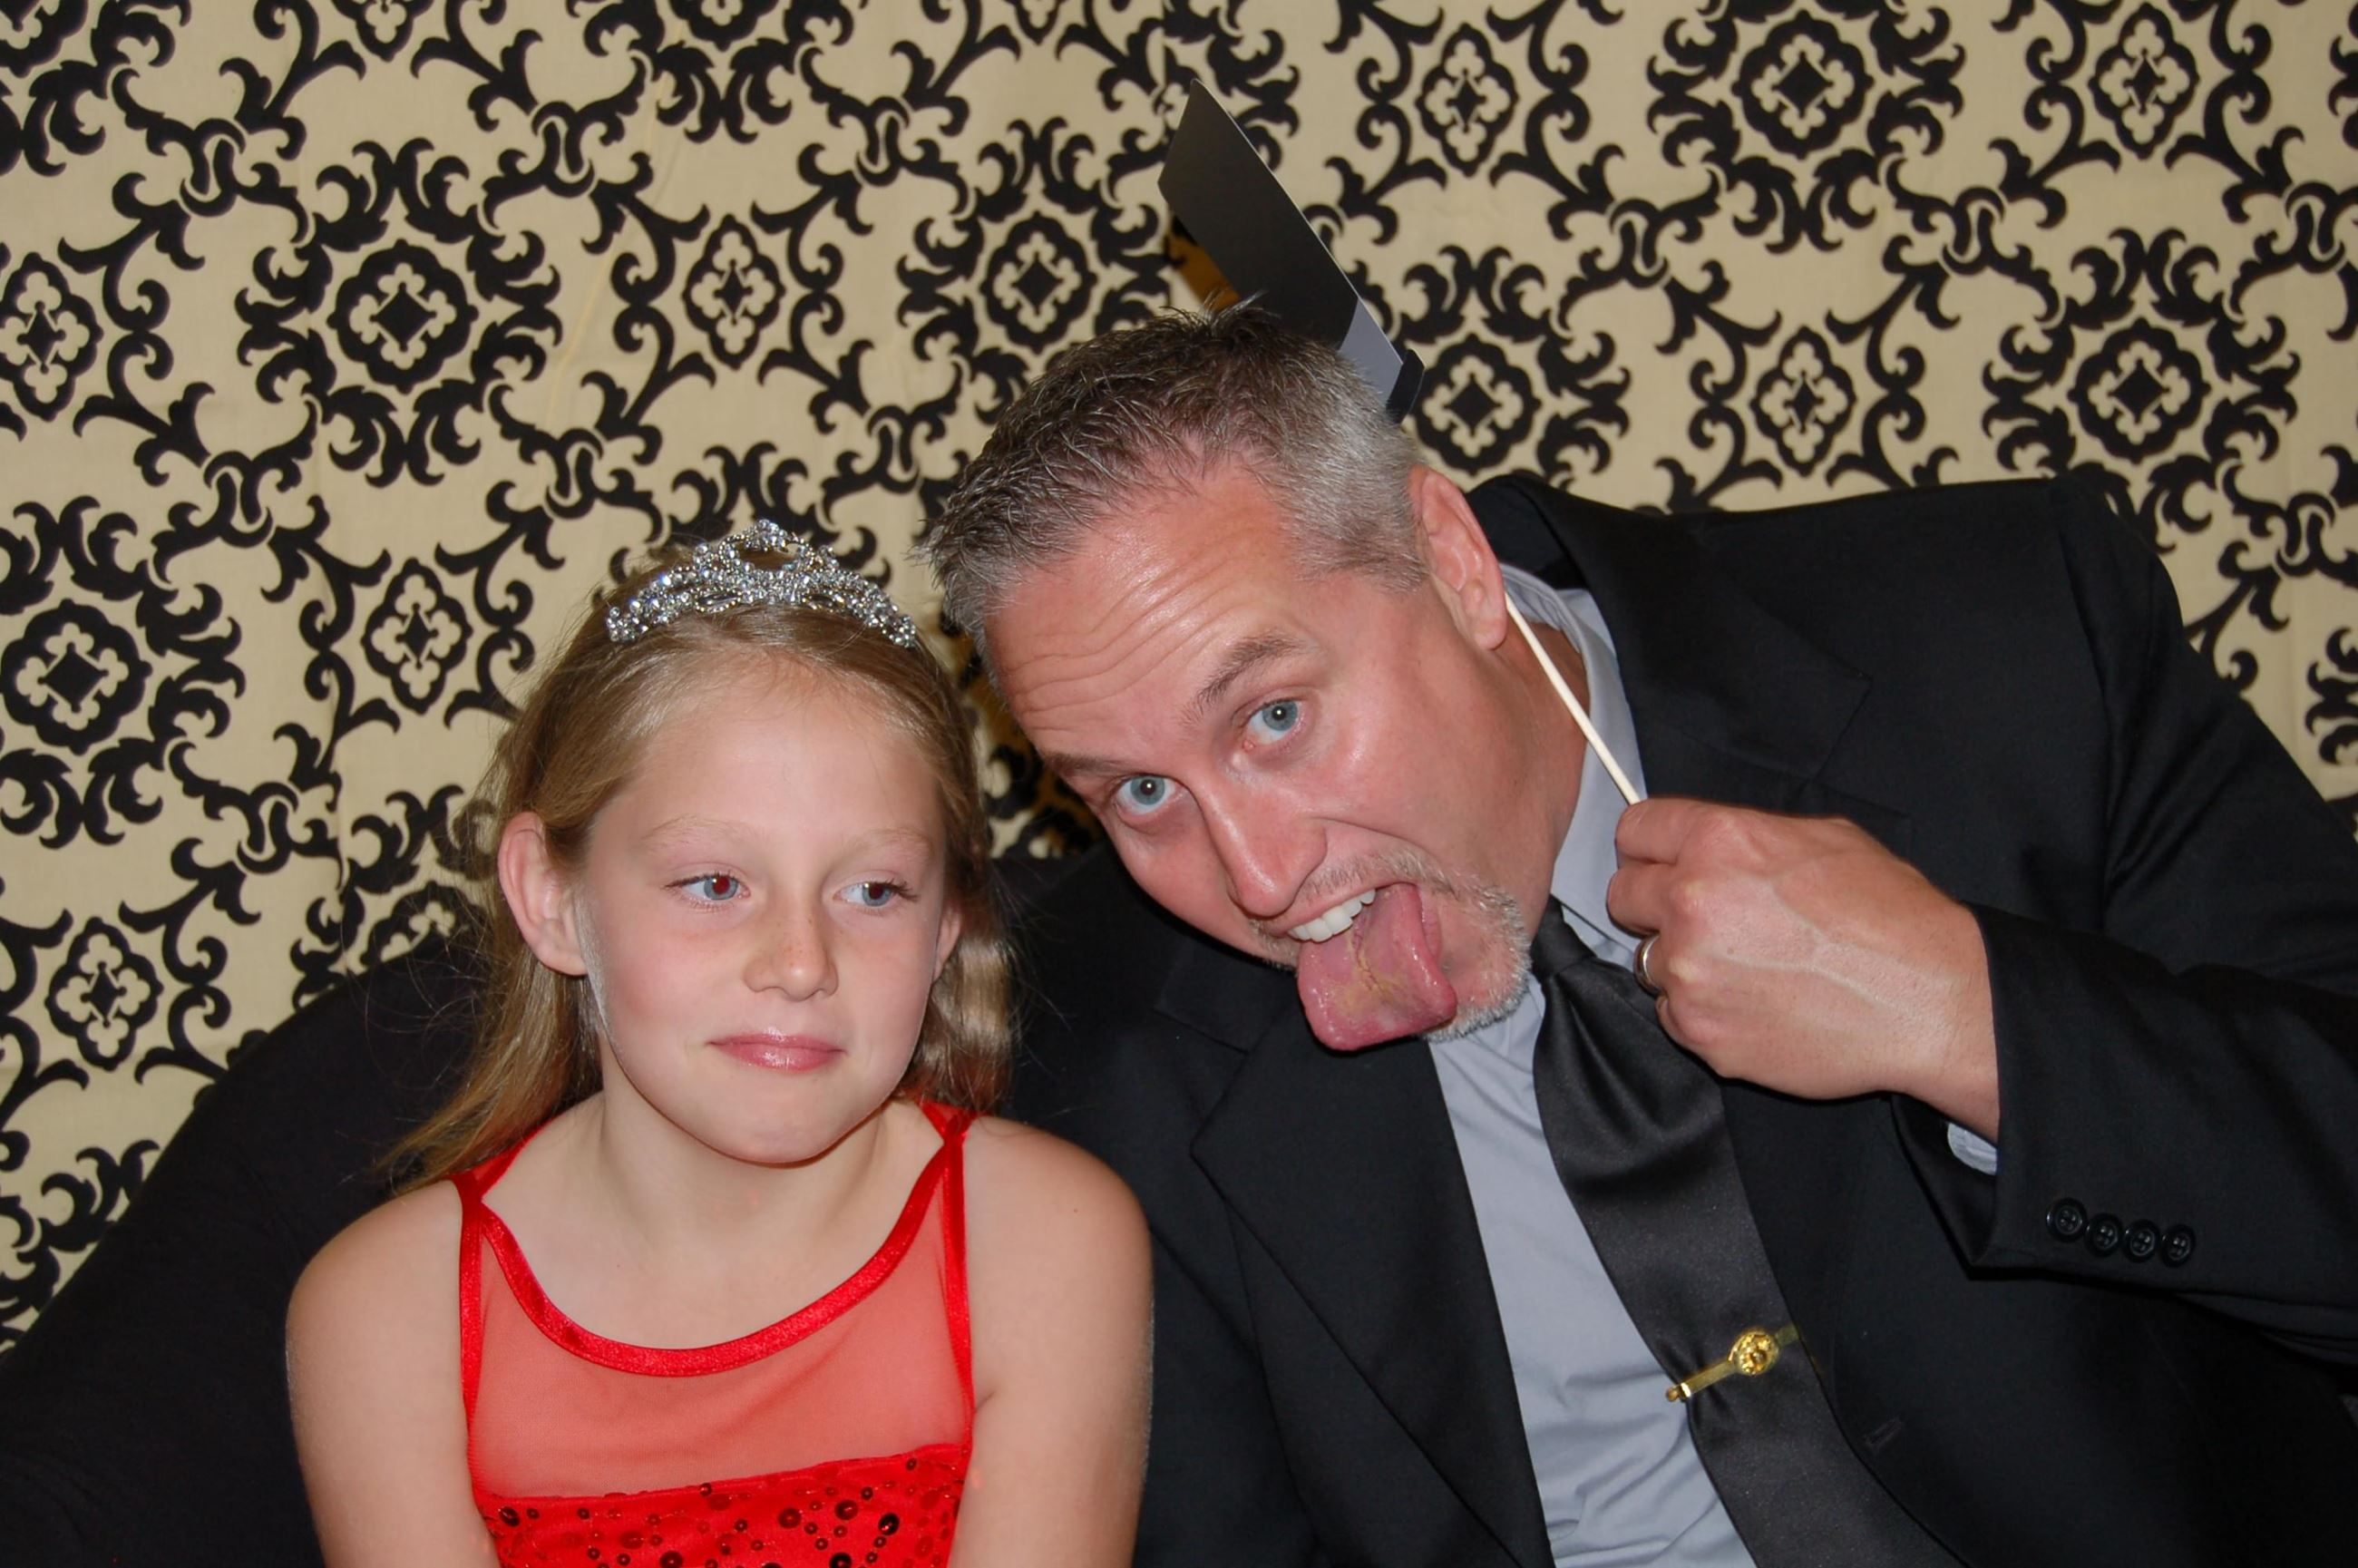 Dad making a goofy face and girl smiling at Father Daughter Dinner Dance